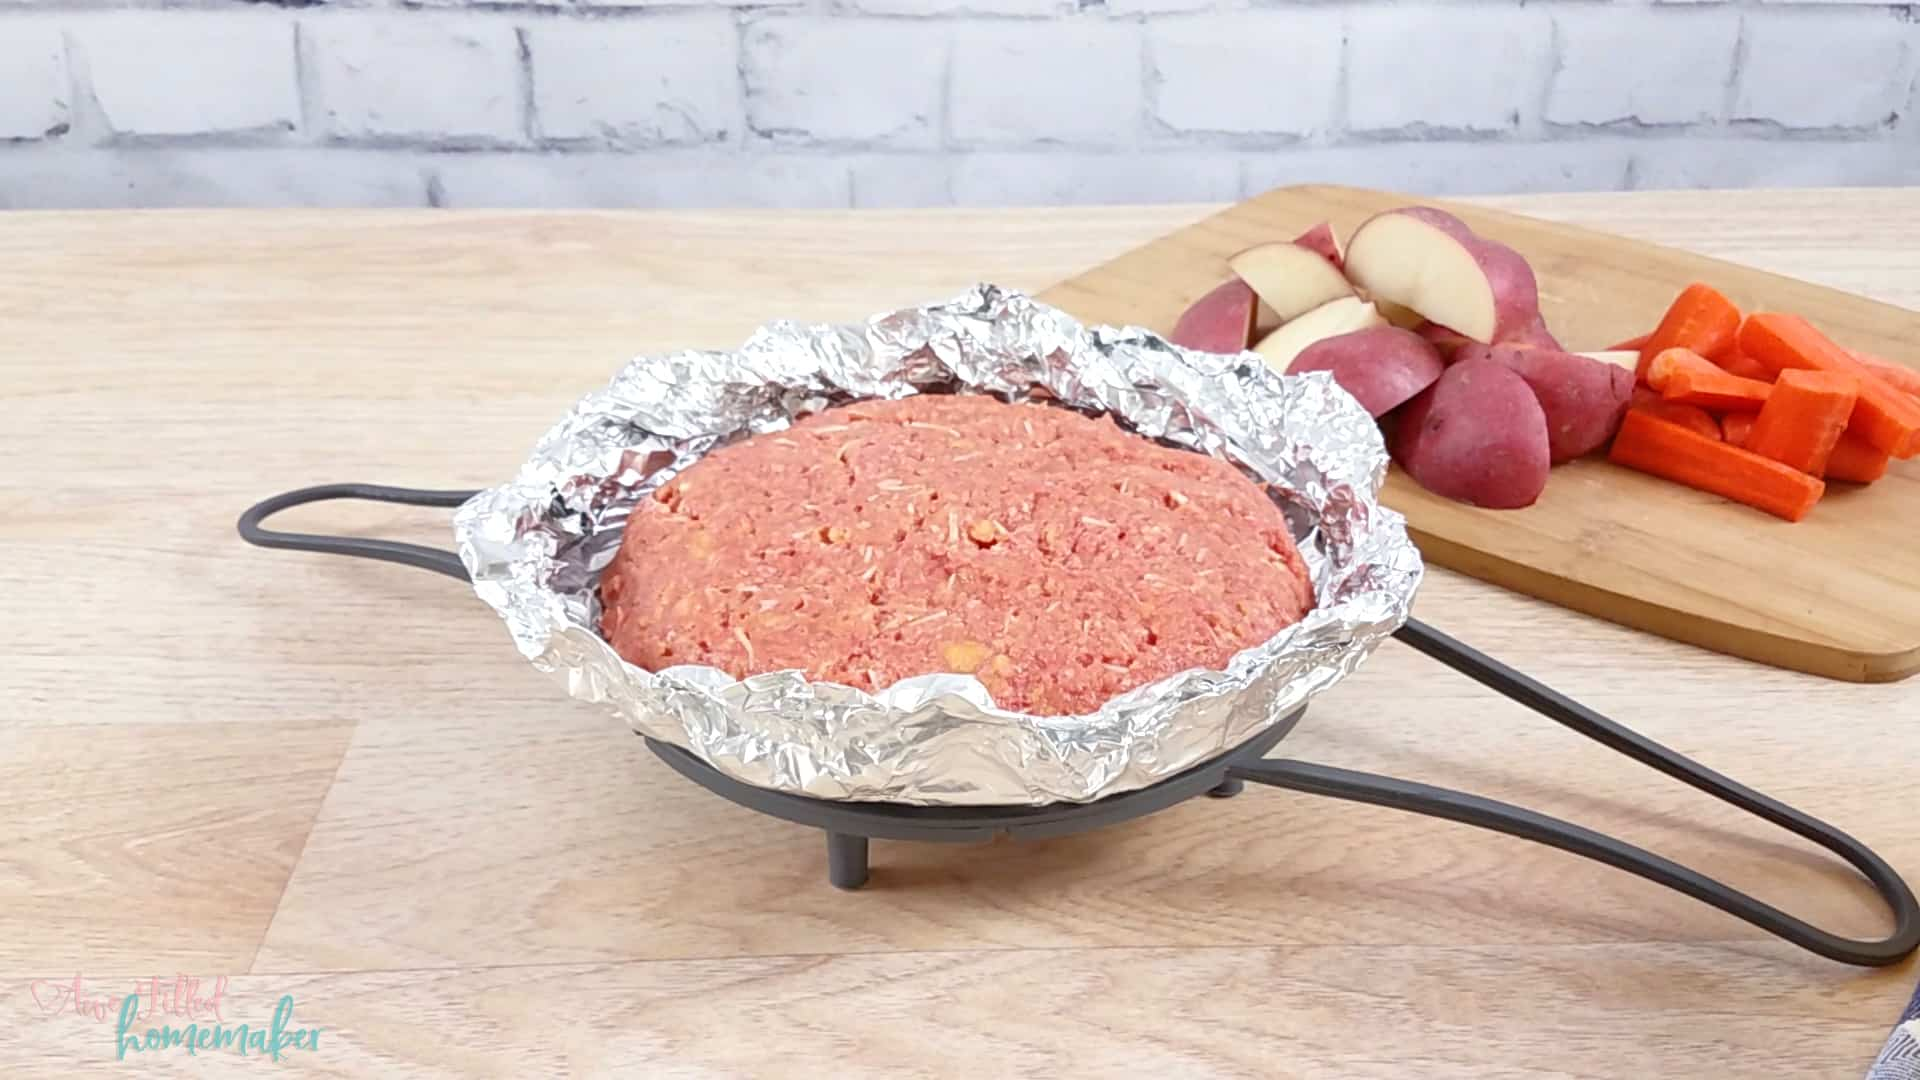 Add meatloaf mixture patty in tinfoil to trivet.